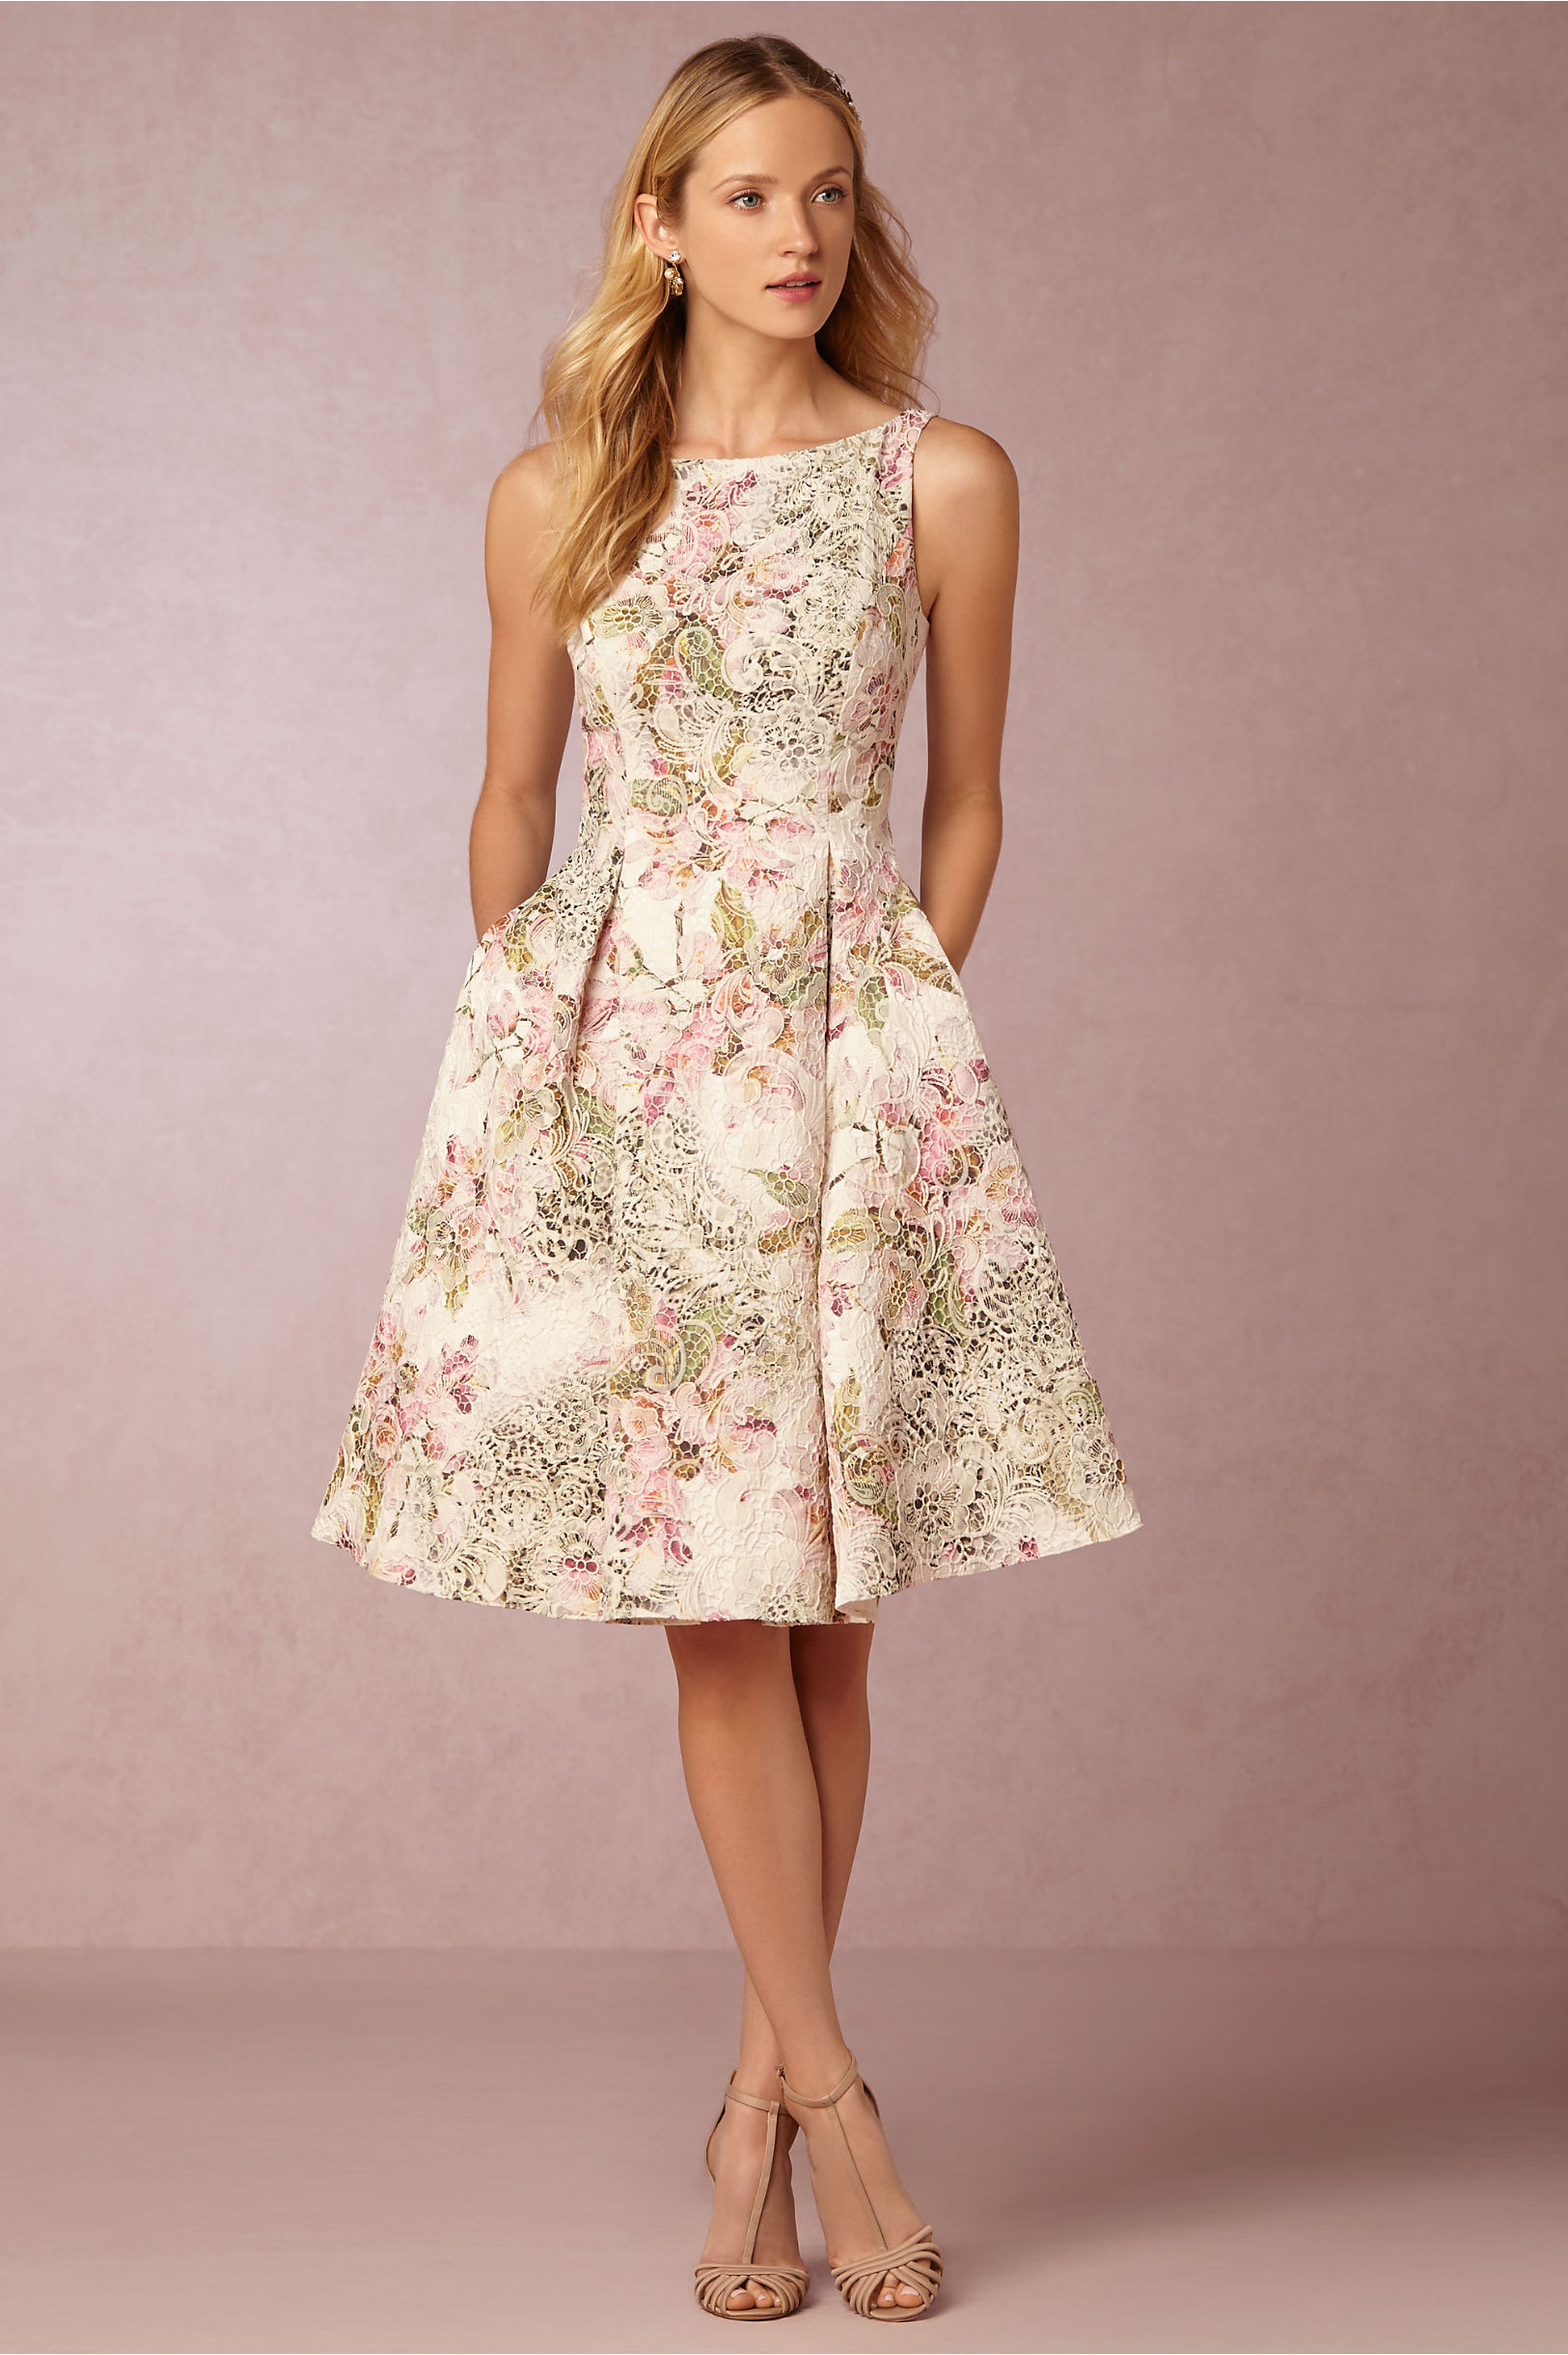 Adrianna Papell Multi Gardenia Dress